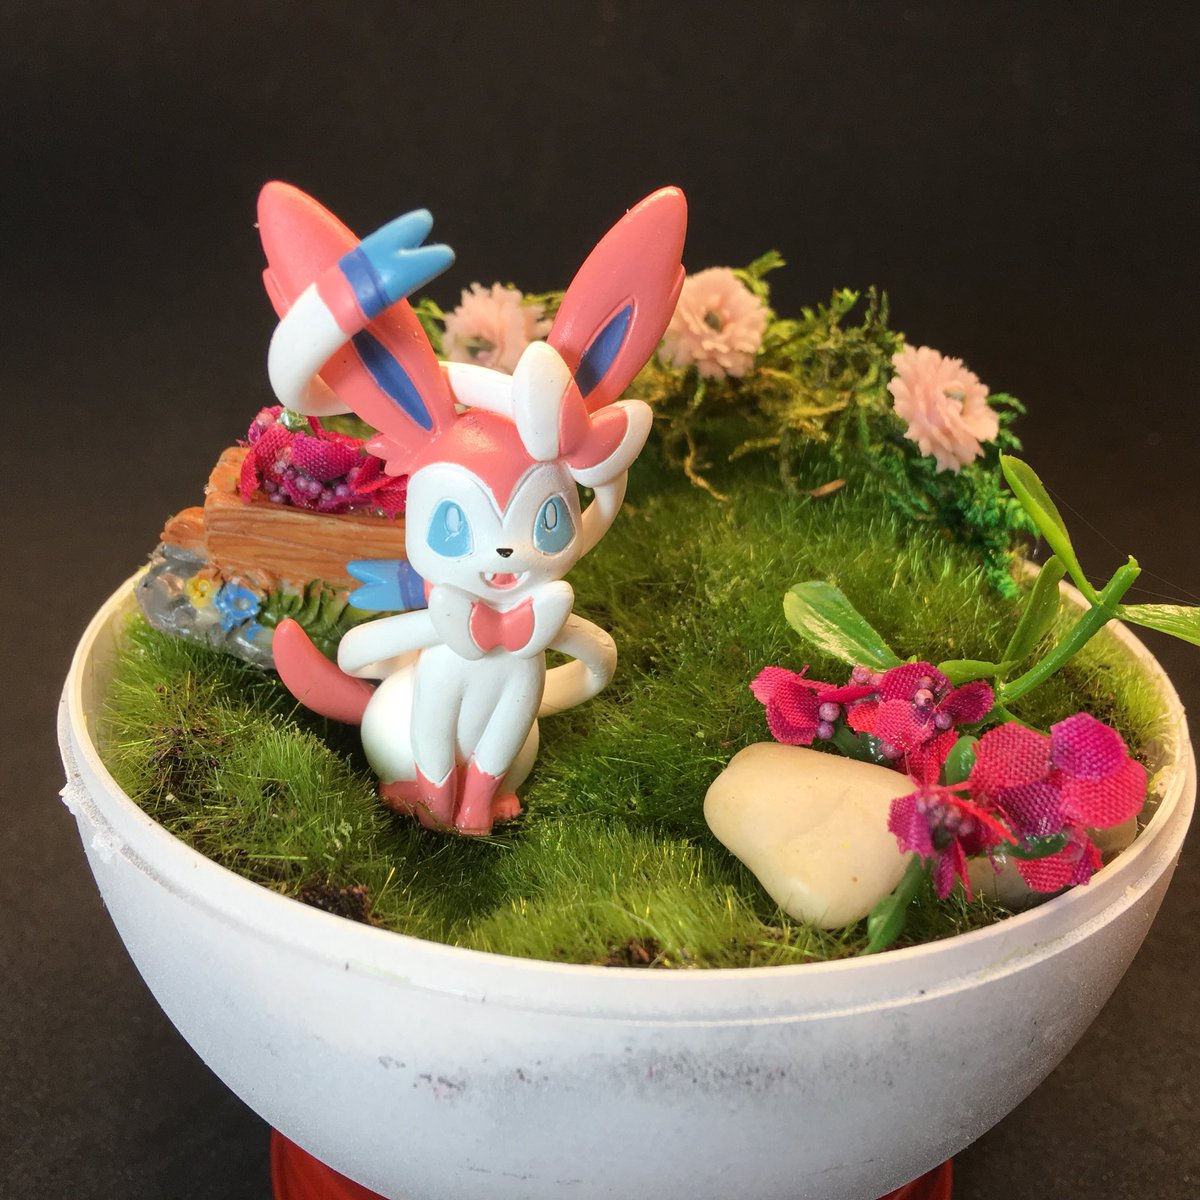 Will Petrey On Twitter More Pokemon Pokeball Terrarium S Ready For Tomorrow S Heroesonline Heroescon 2018 Be Sure To Shop Early For Best Selection At Artistalley Table Aa 204 Alolan Ninetails Sylveon Charmander